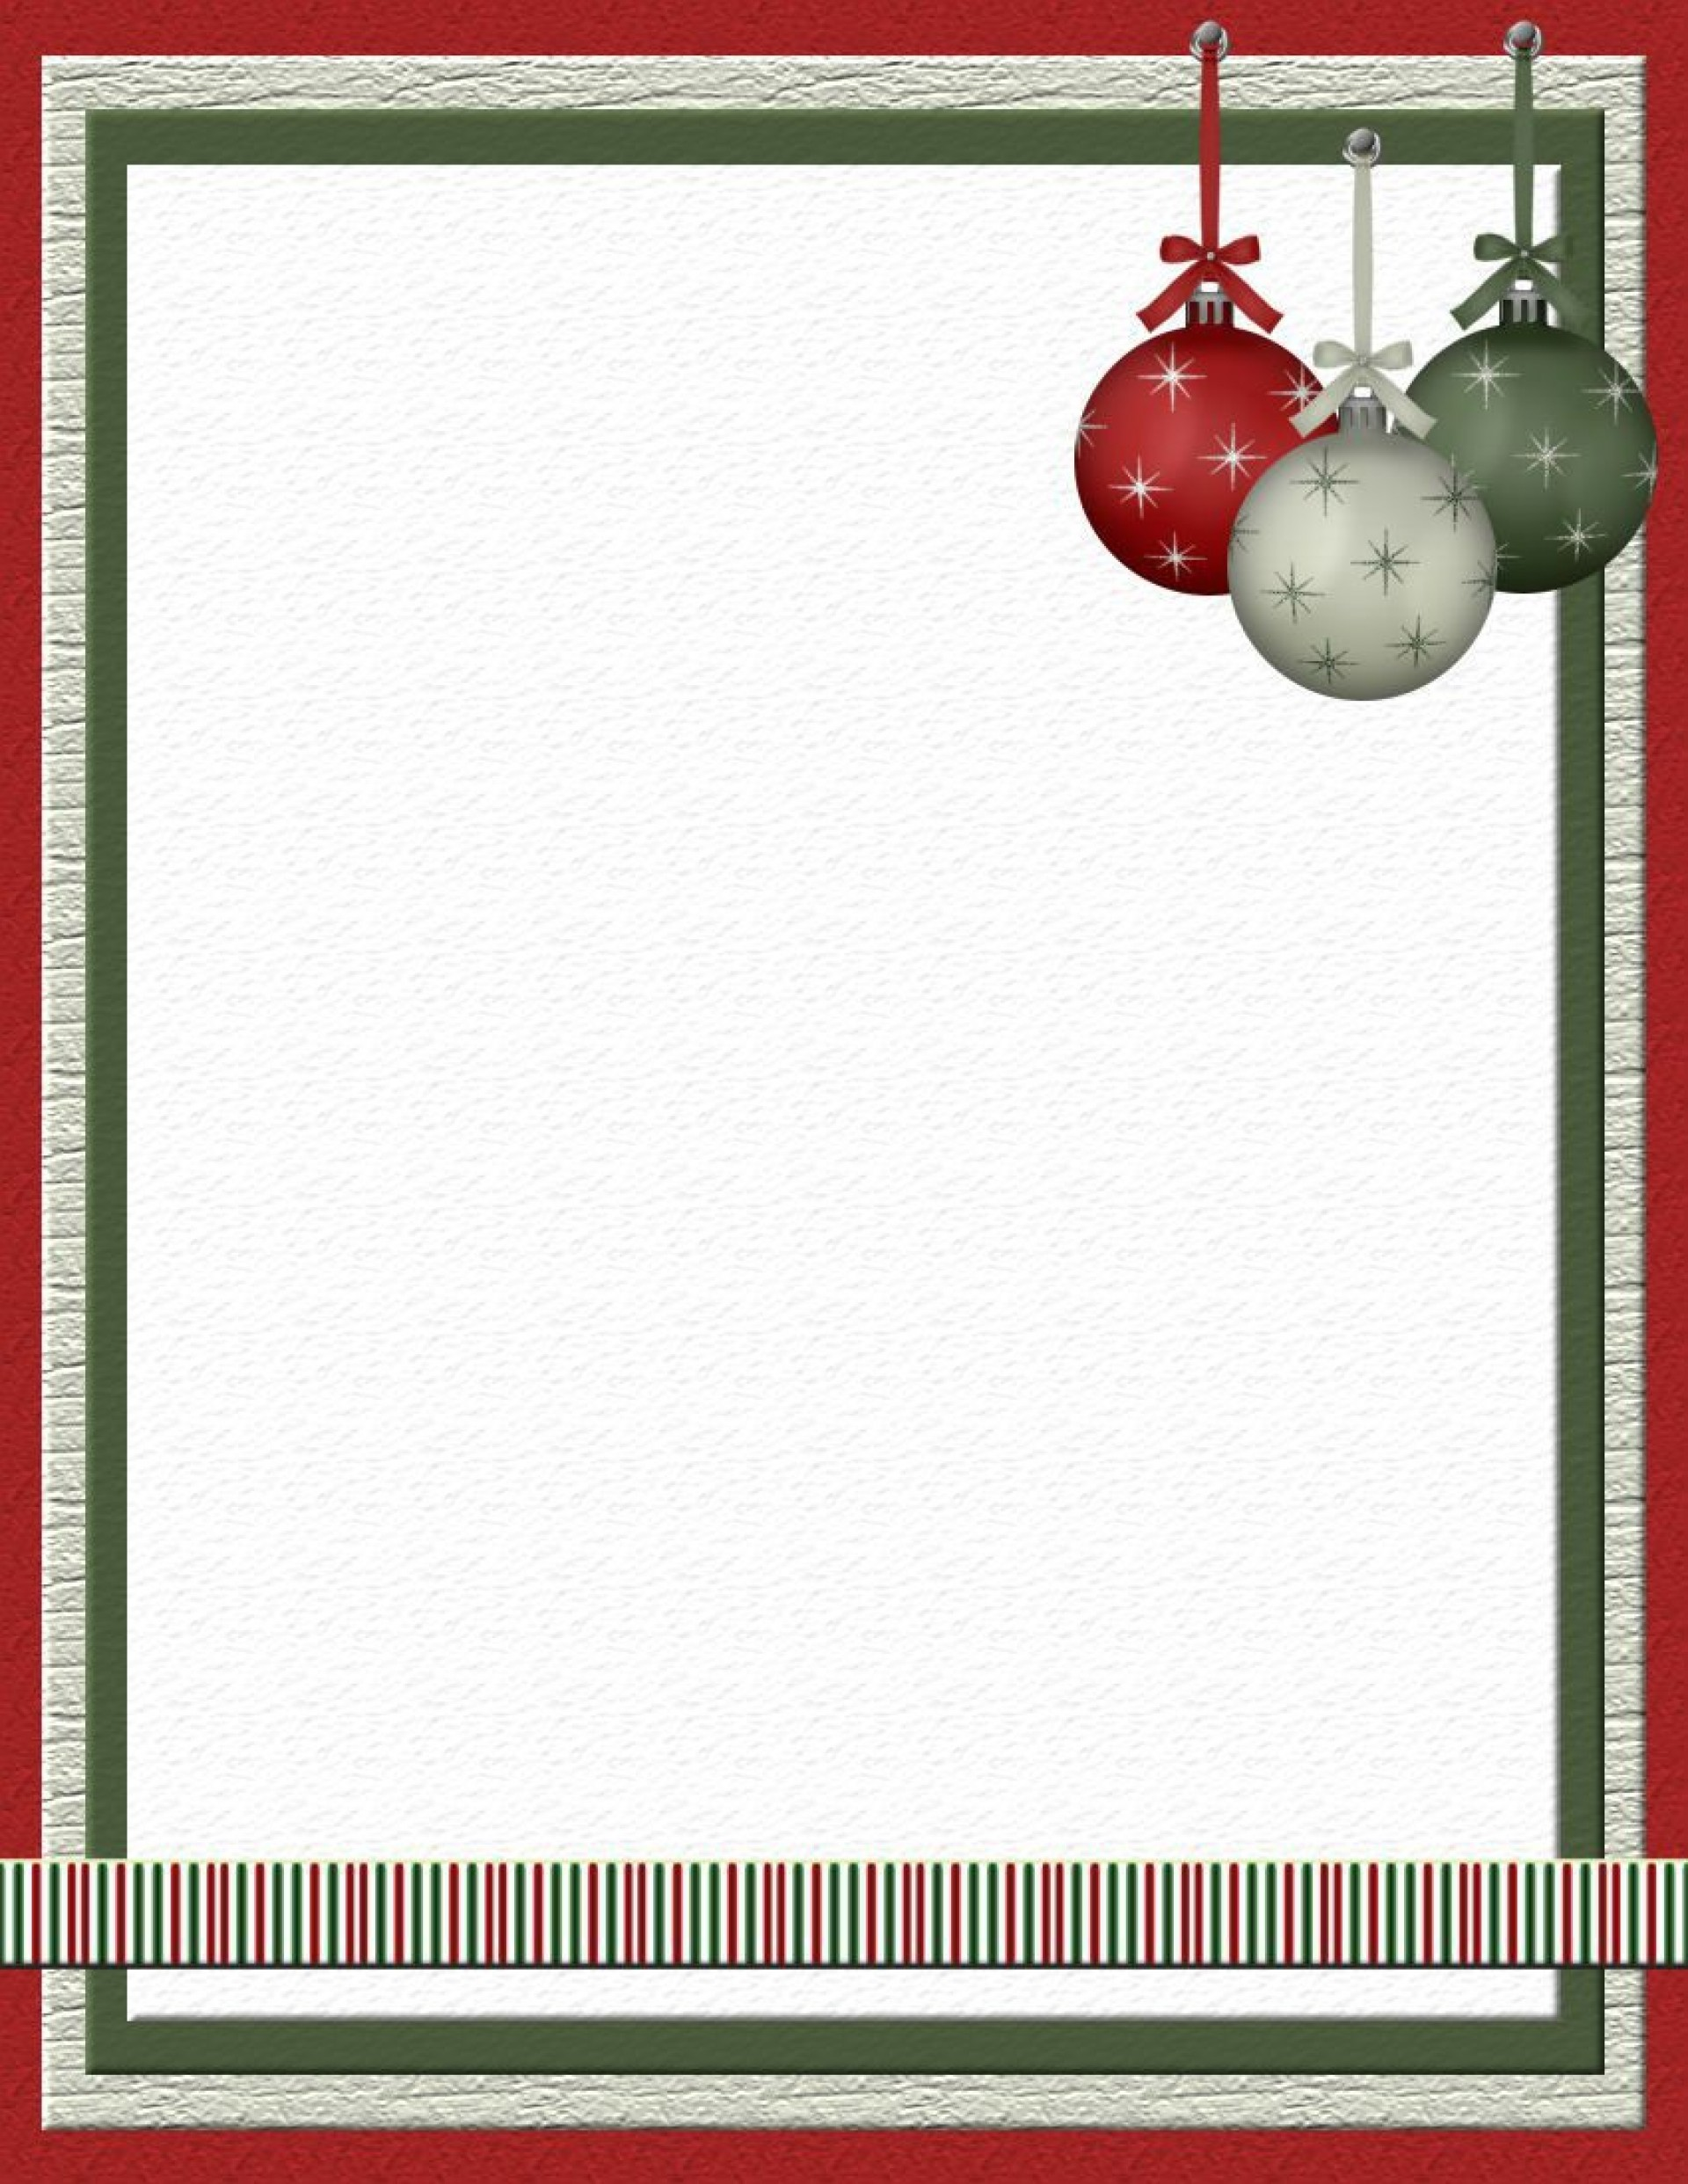 002 Stupendou Free Christma Template For Word Idea  Holiday Party Invitation Recipe Card Printable Stationery1920